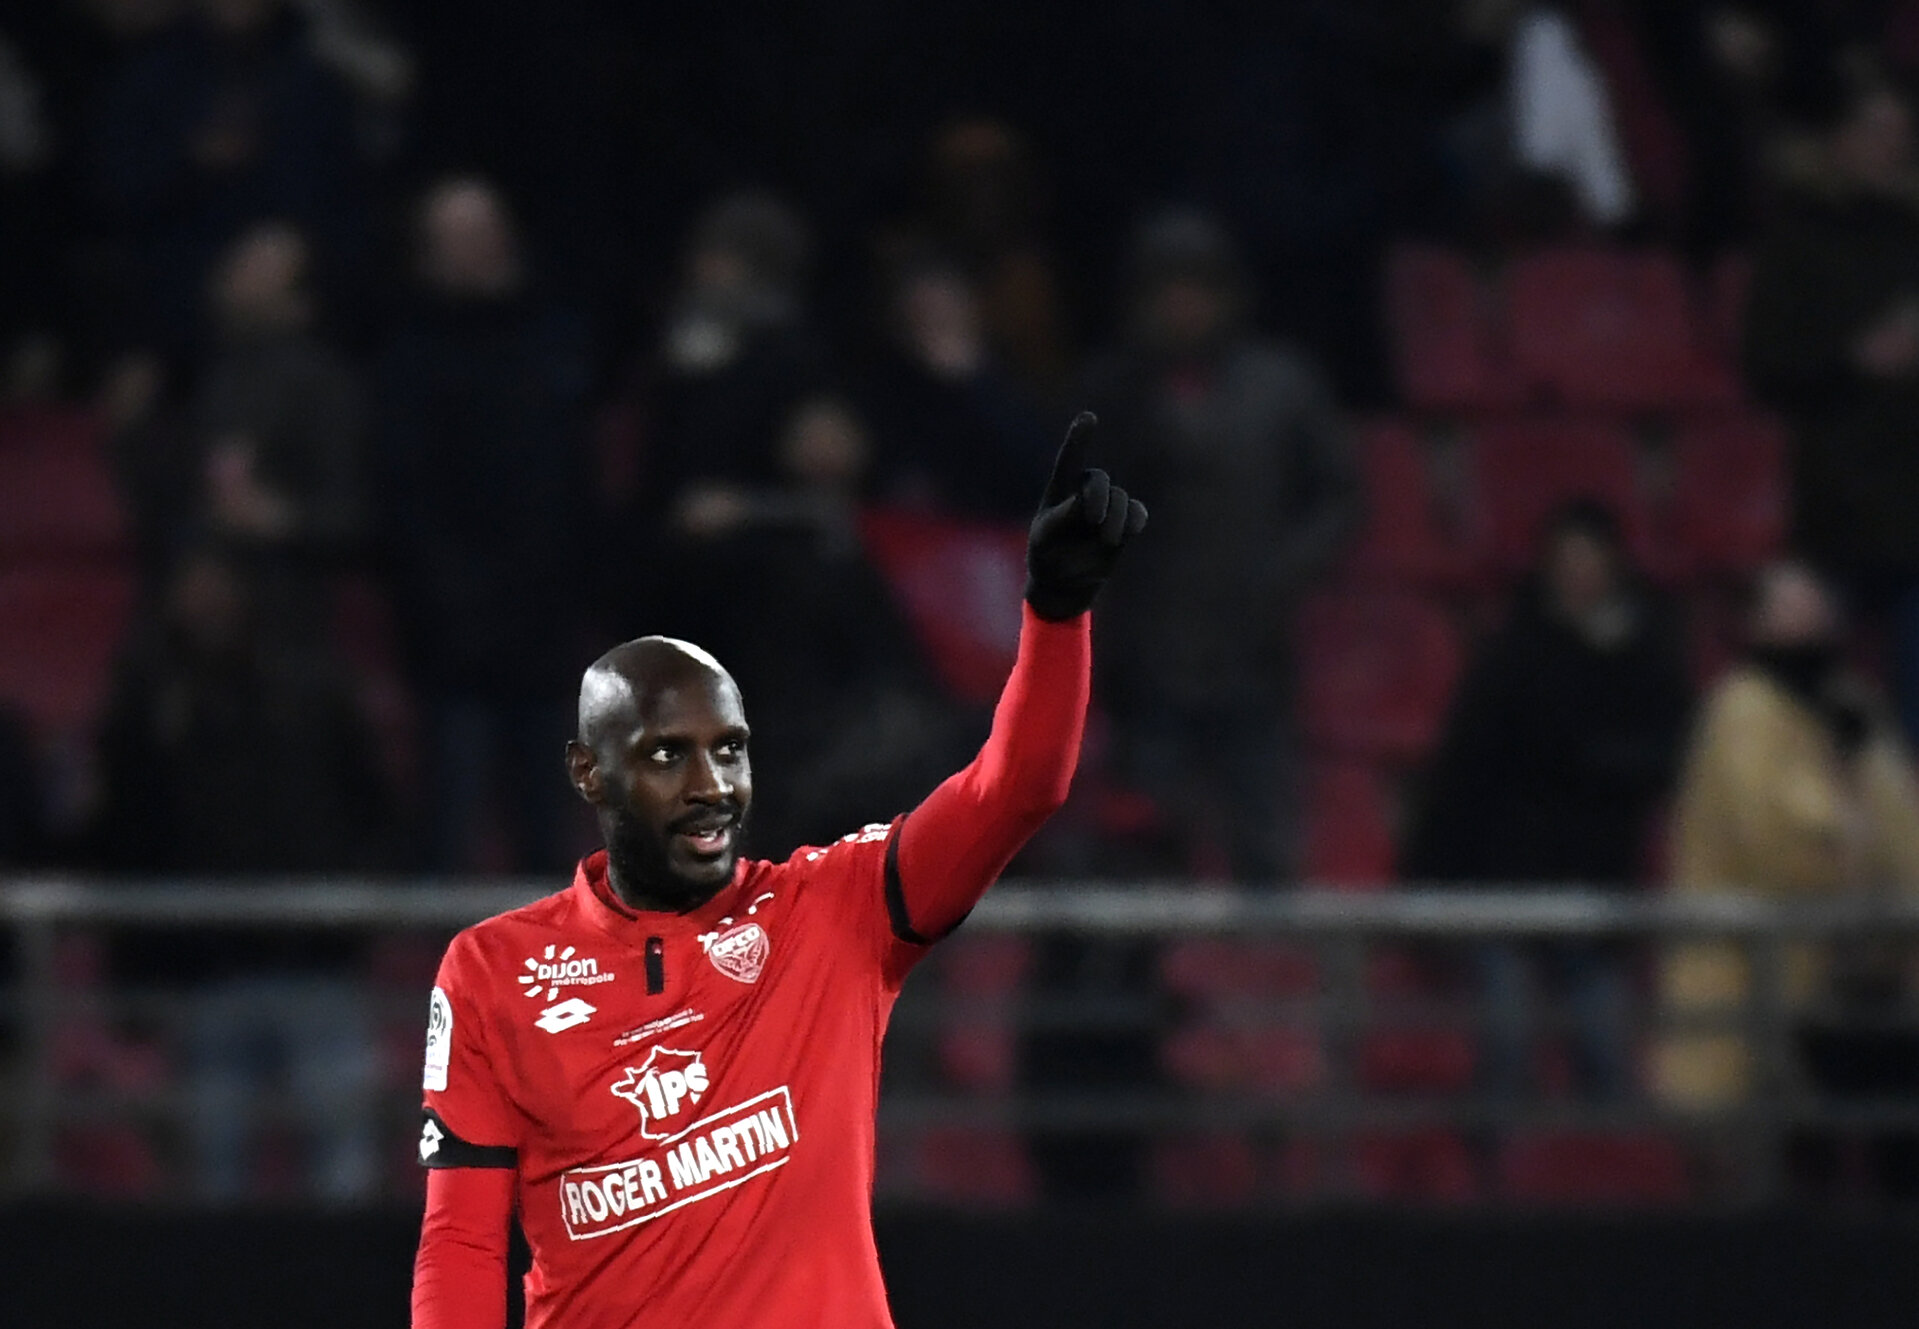 Dijon's Cap Verdean forward Julio Tavares reacts after scoring a goal during the French L1 football match between Dijon FCO and OGC Nice on February 10, 2018 at the Gaston Gerard stadium in Dijon, central-eastern France.   / AFP PHOTO / PHILIPPE DESMAZES        (Photo credit should read PHILIPPE DESMAZES/AFP/Getty Images)